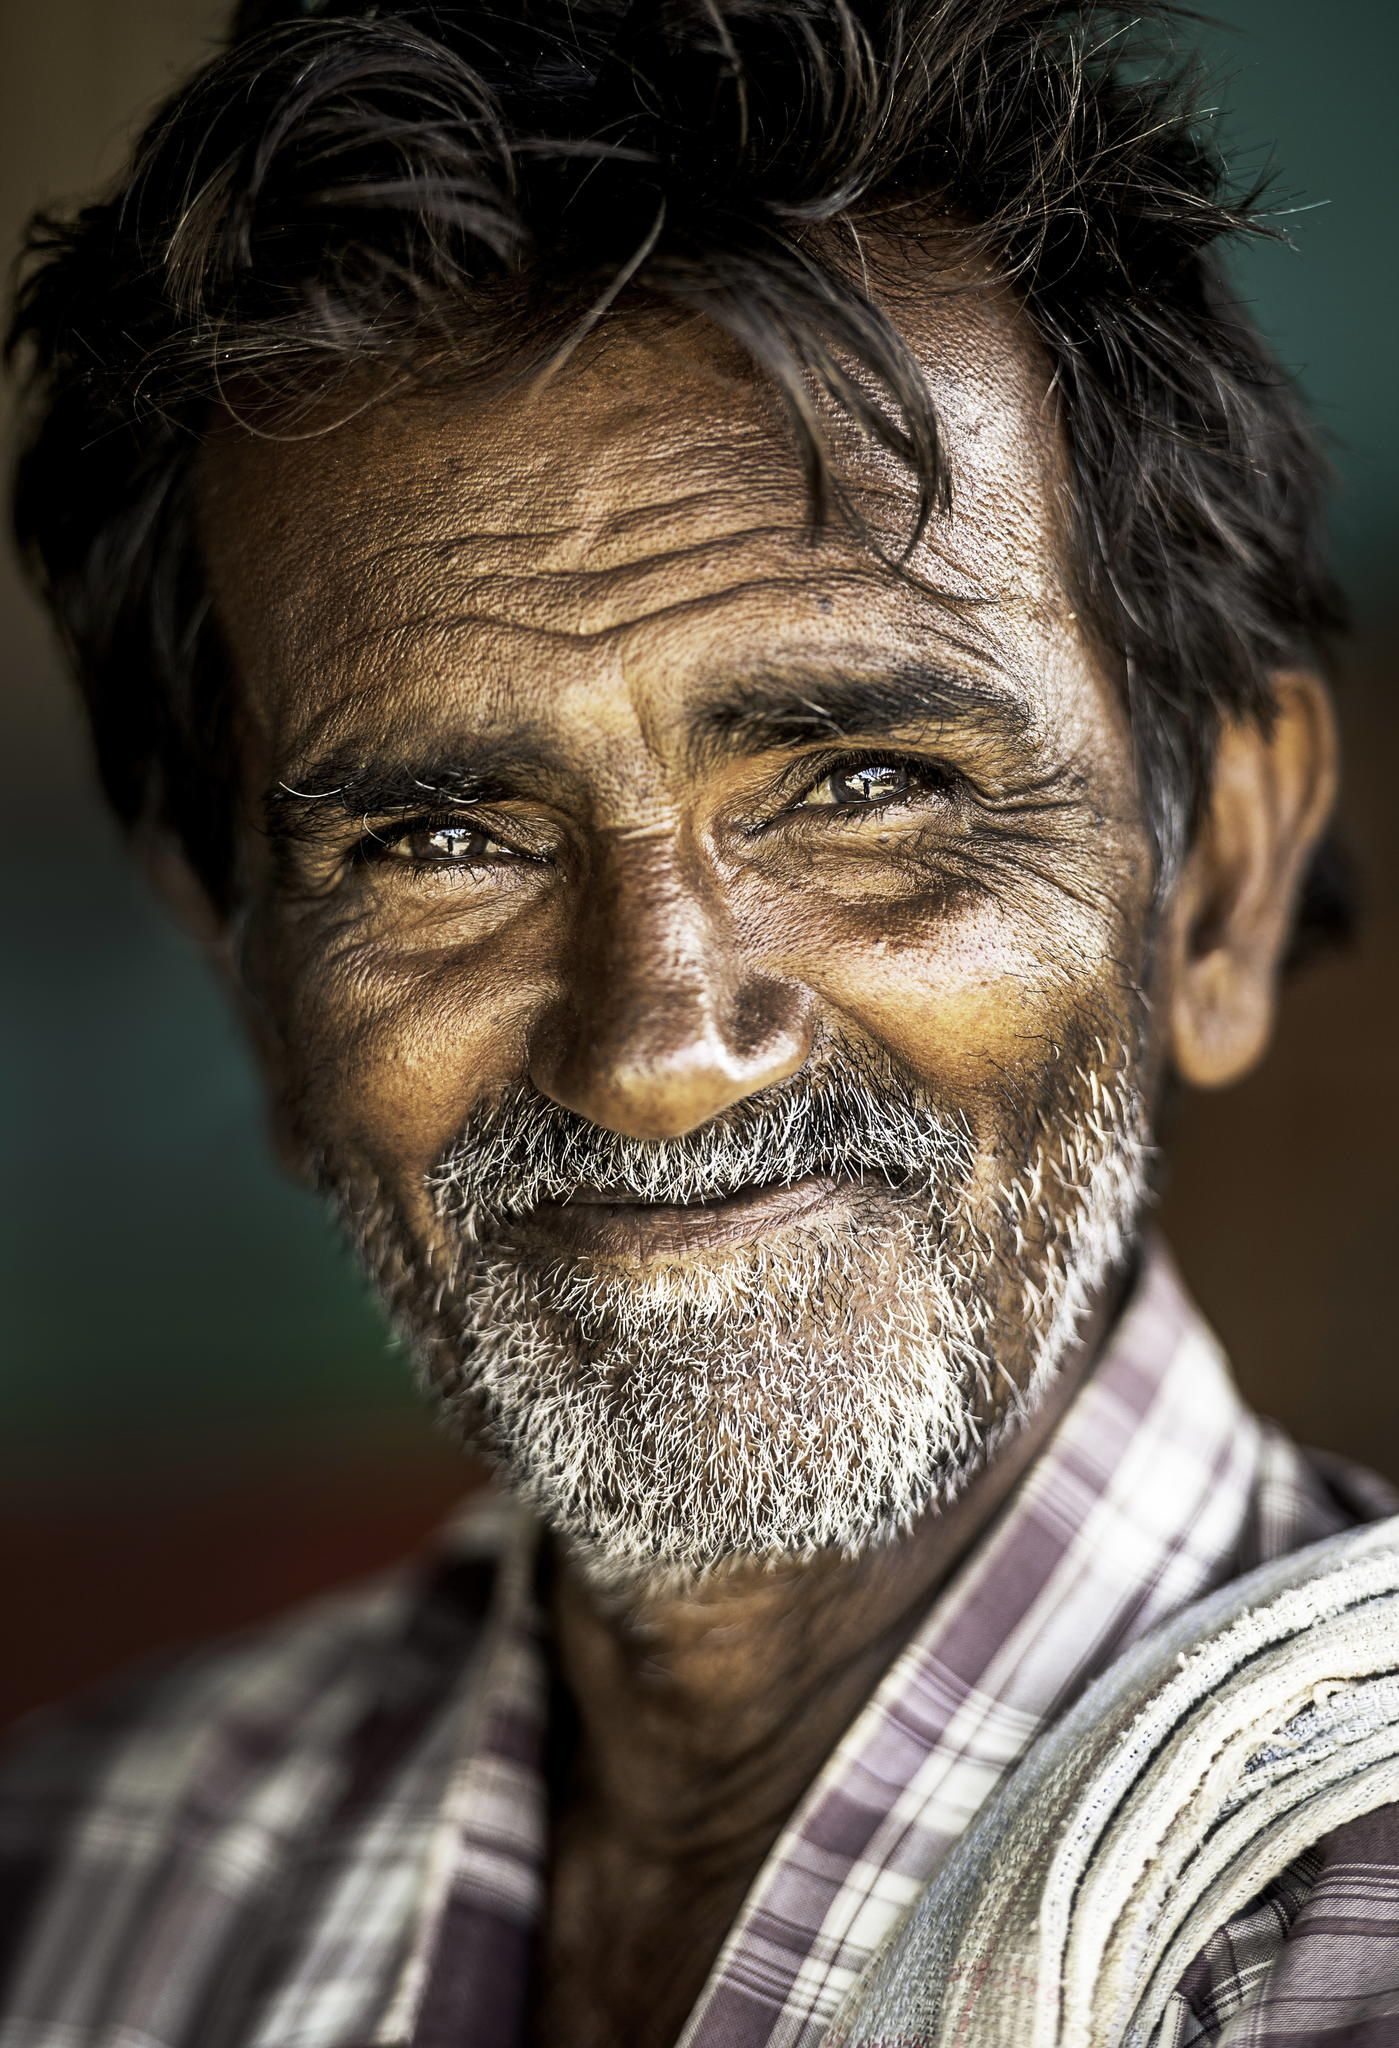 Portrait of a villager by Vidhya Thiagarajan on 500px